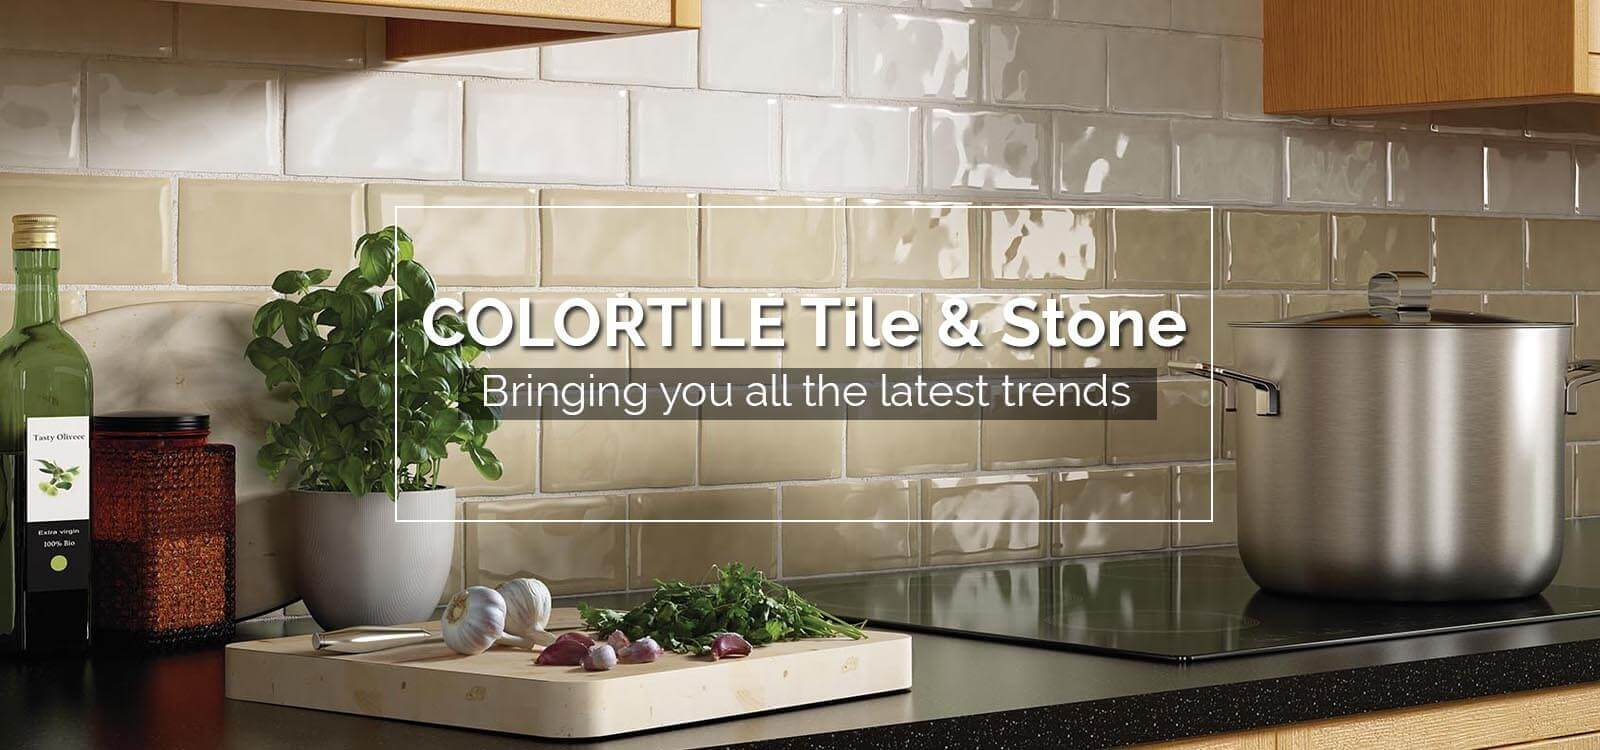 ColorTile Tile & Stone